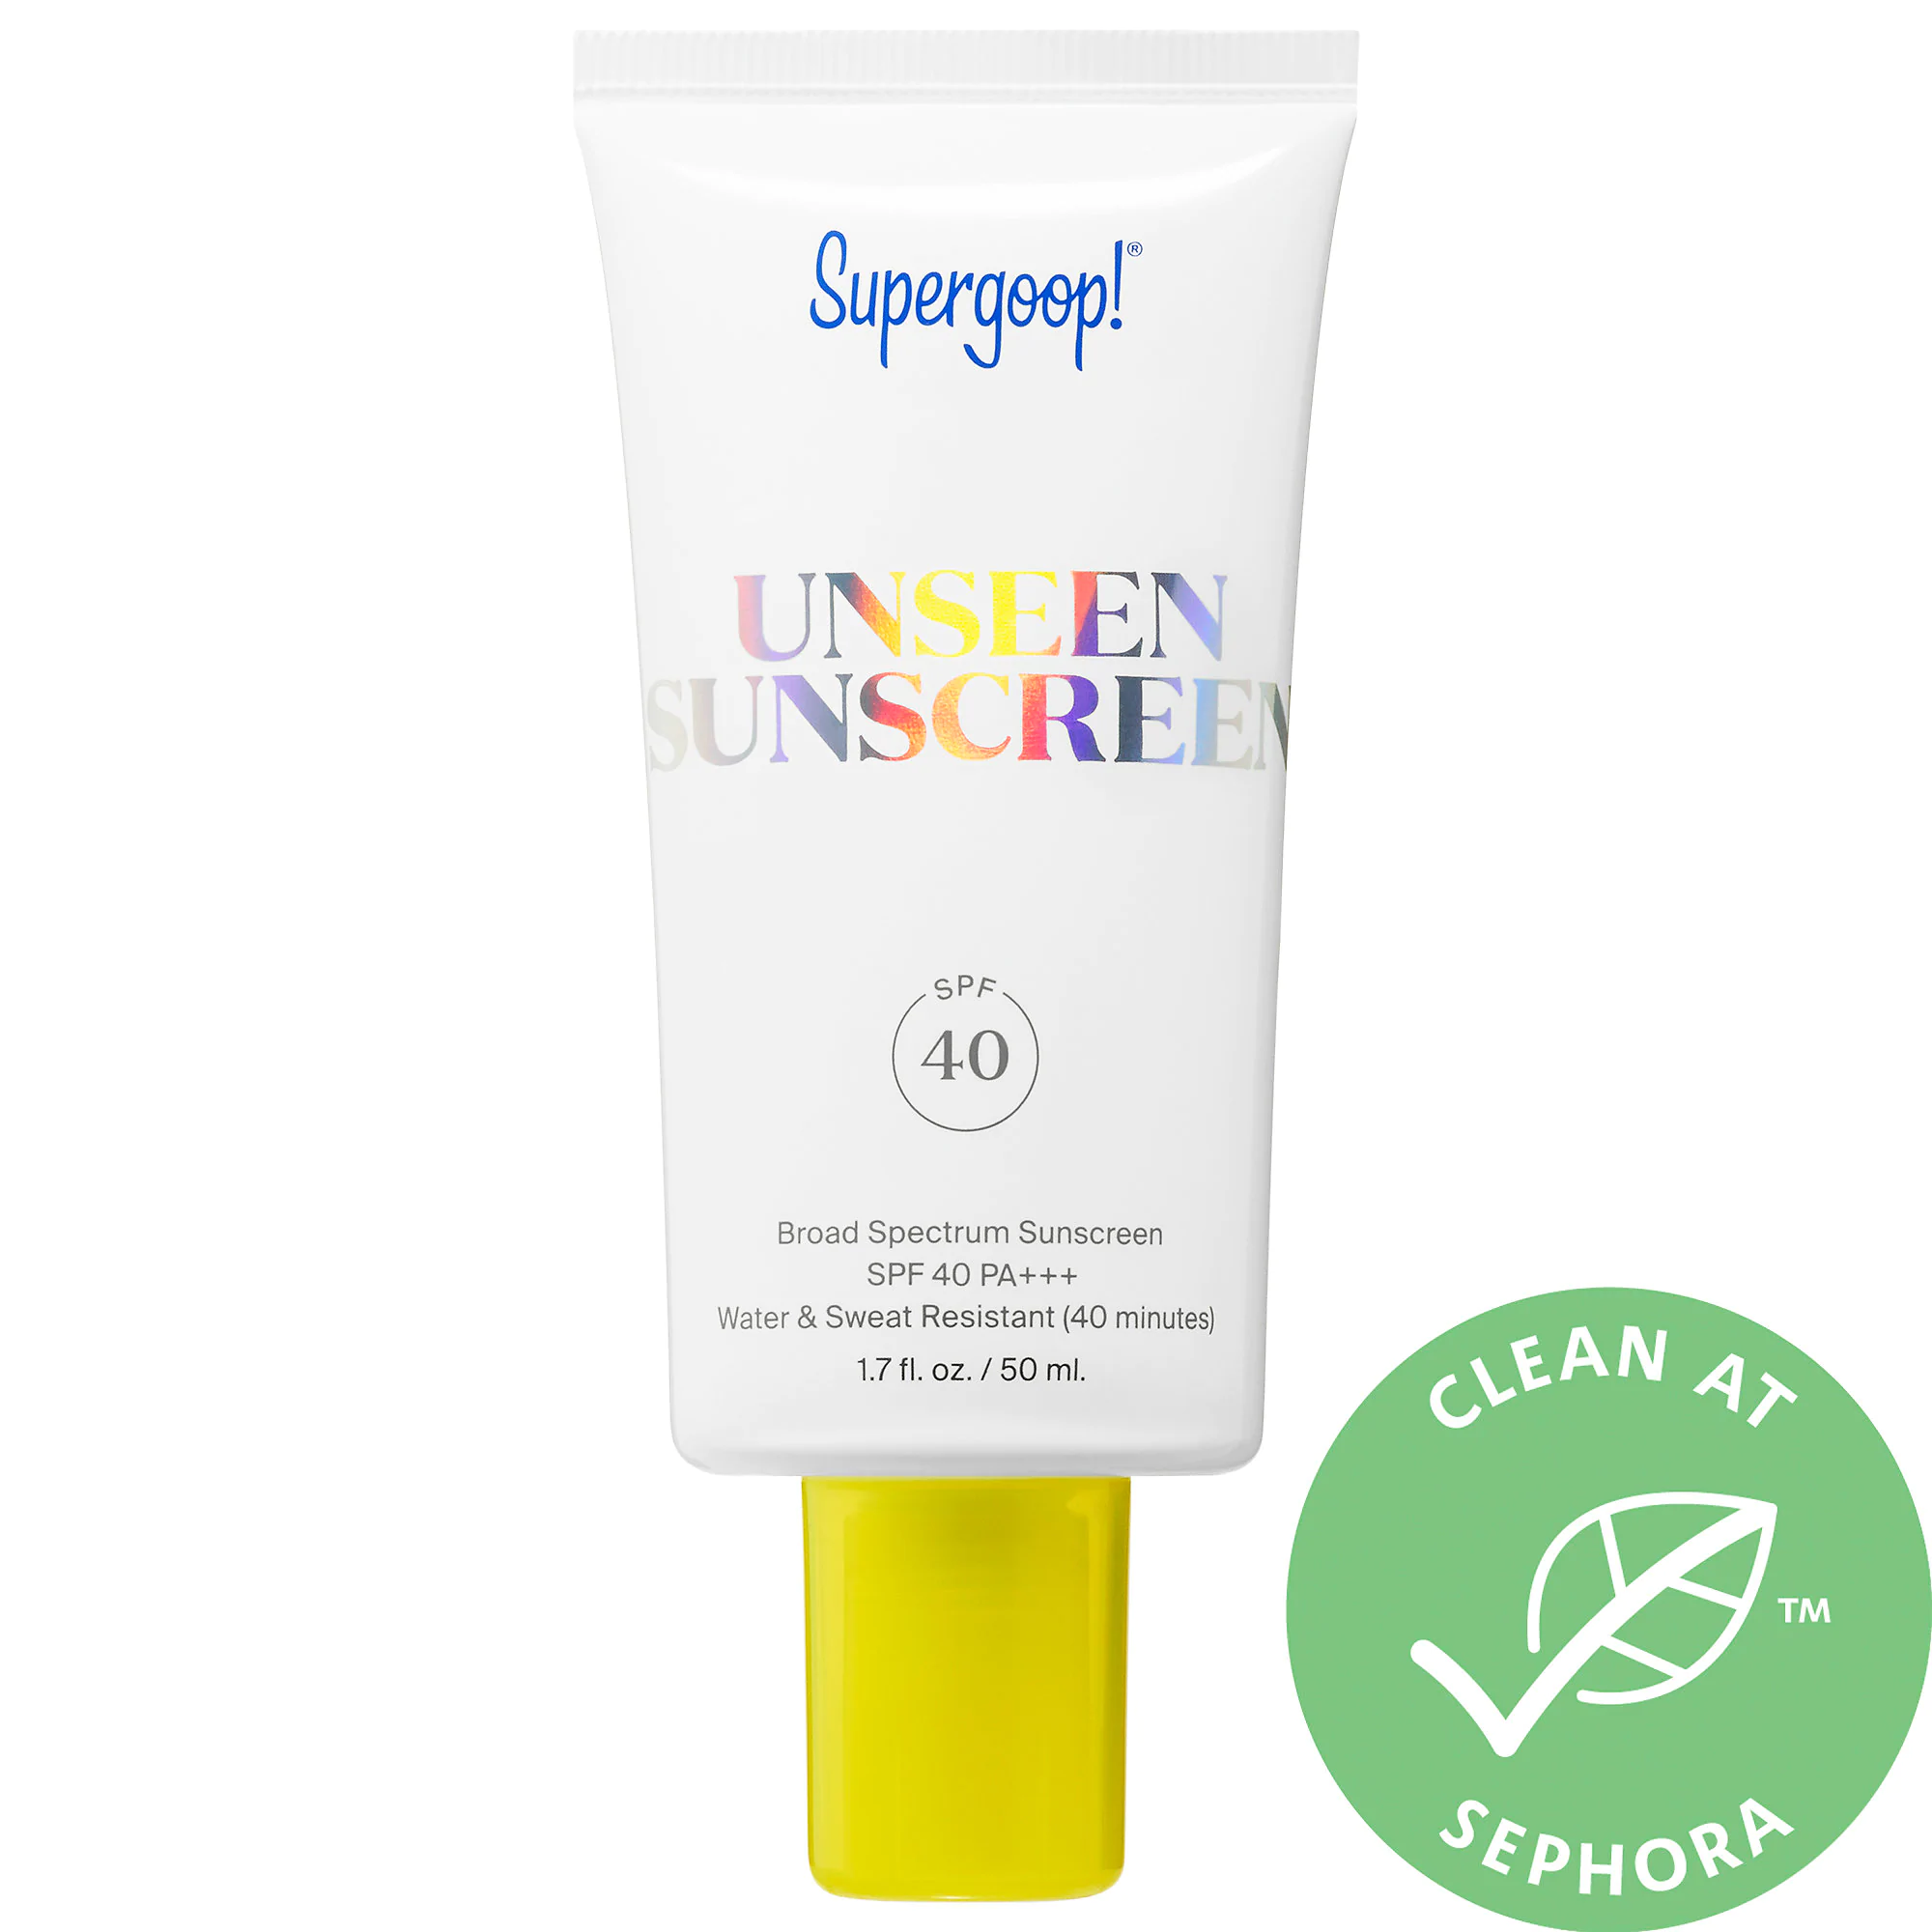 Supergoop! Unseen Sunscreen Spf 40